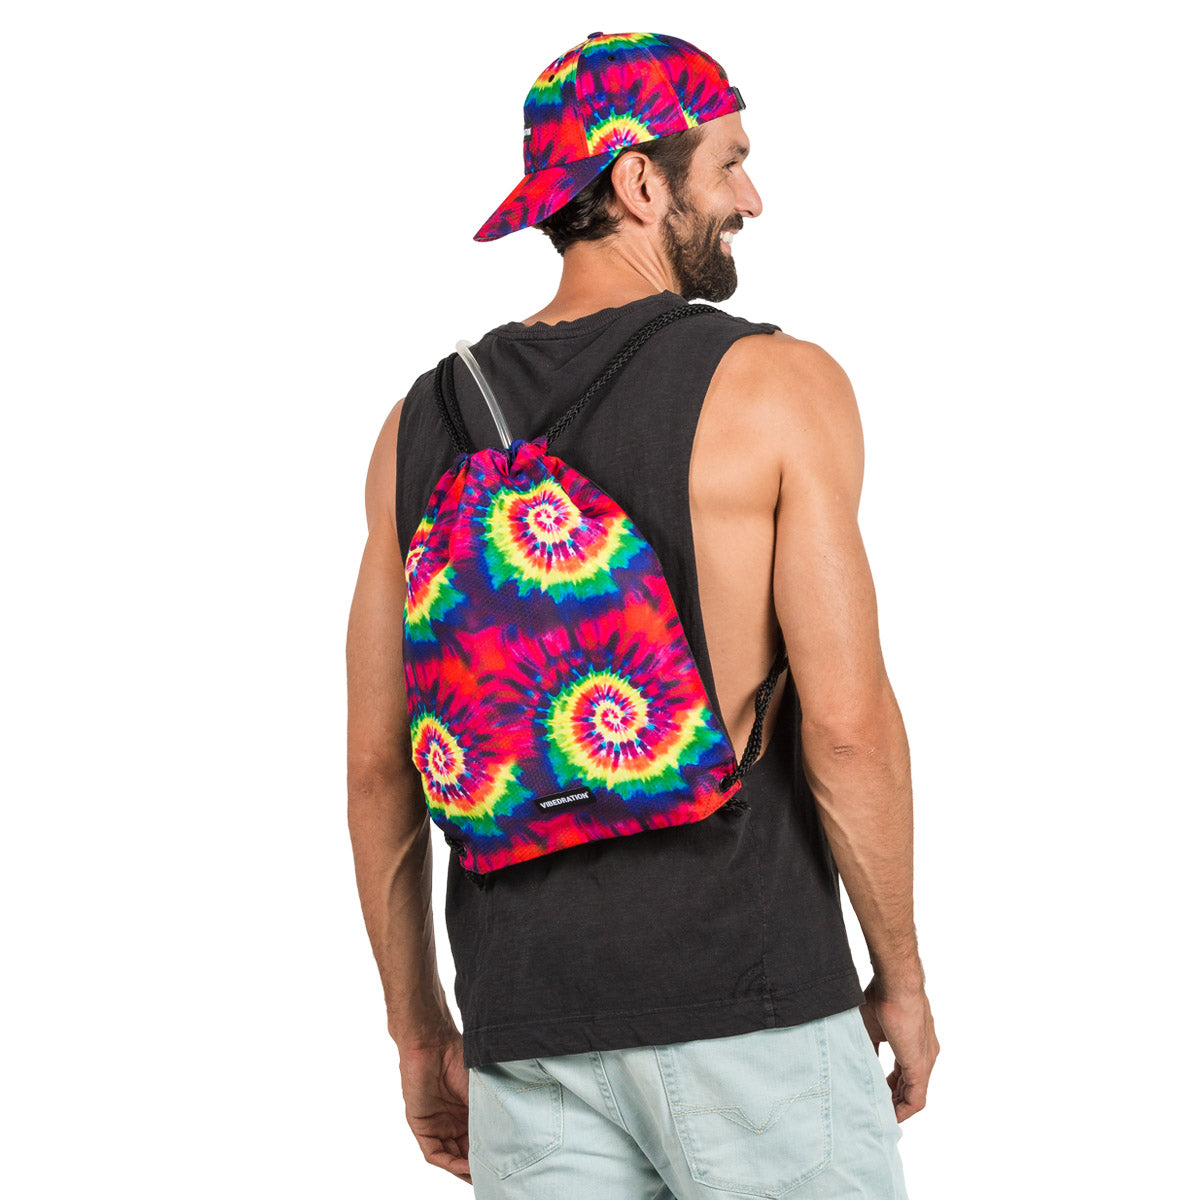 Tie Dye drawstring backpack with 3 liter hydration bag